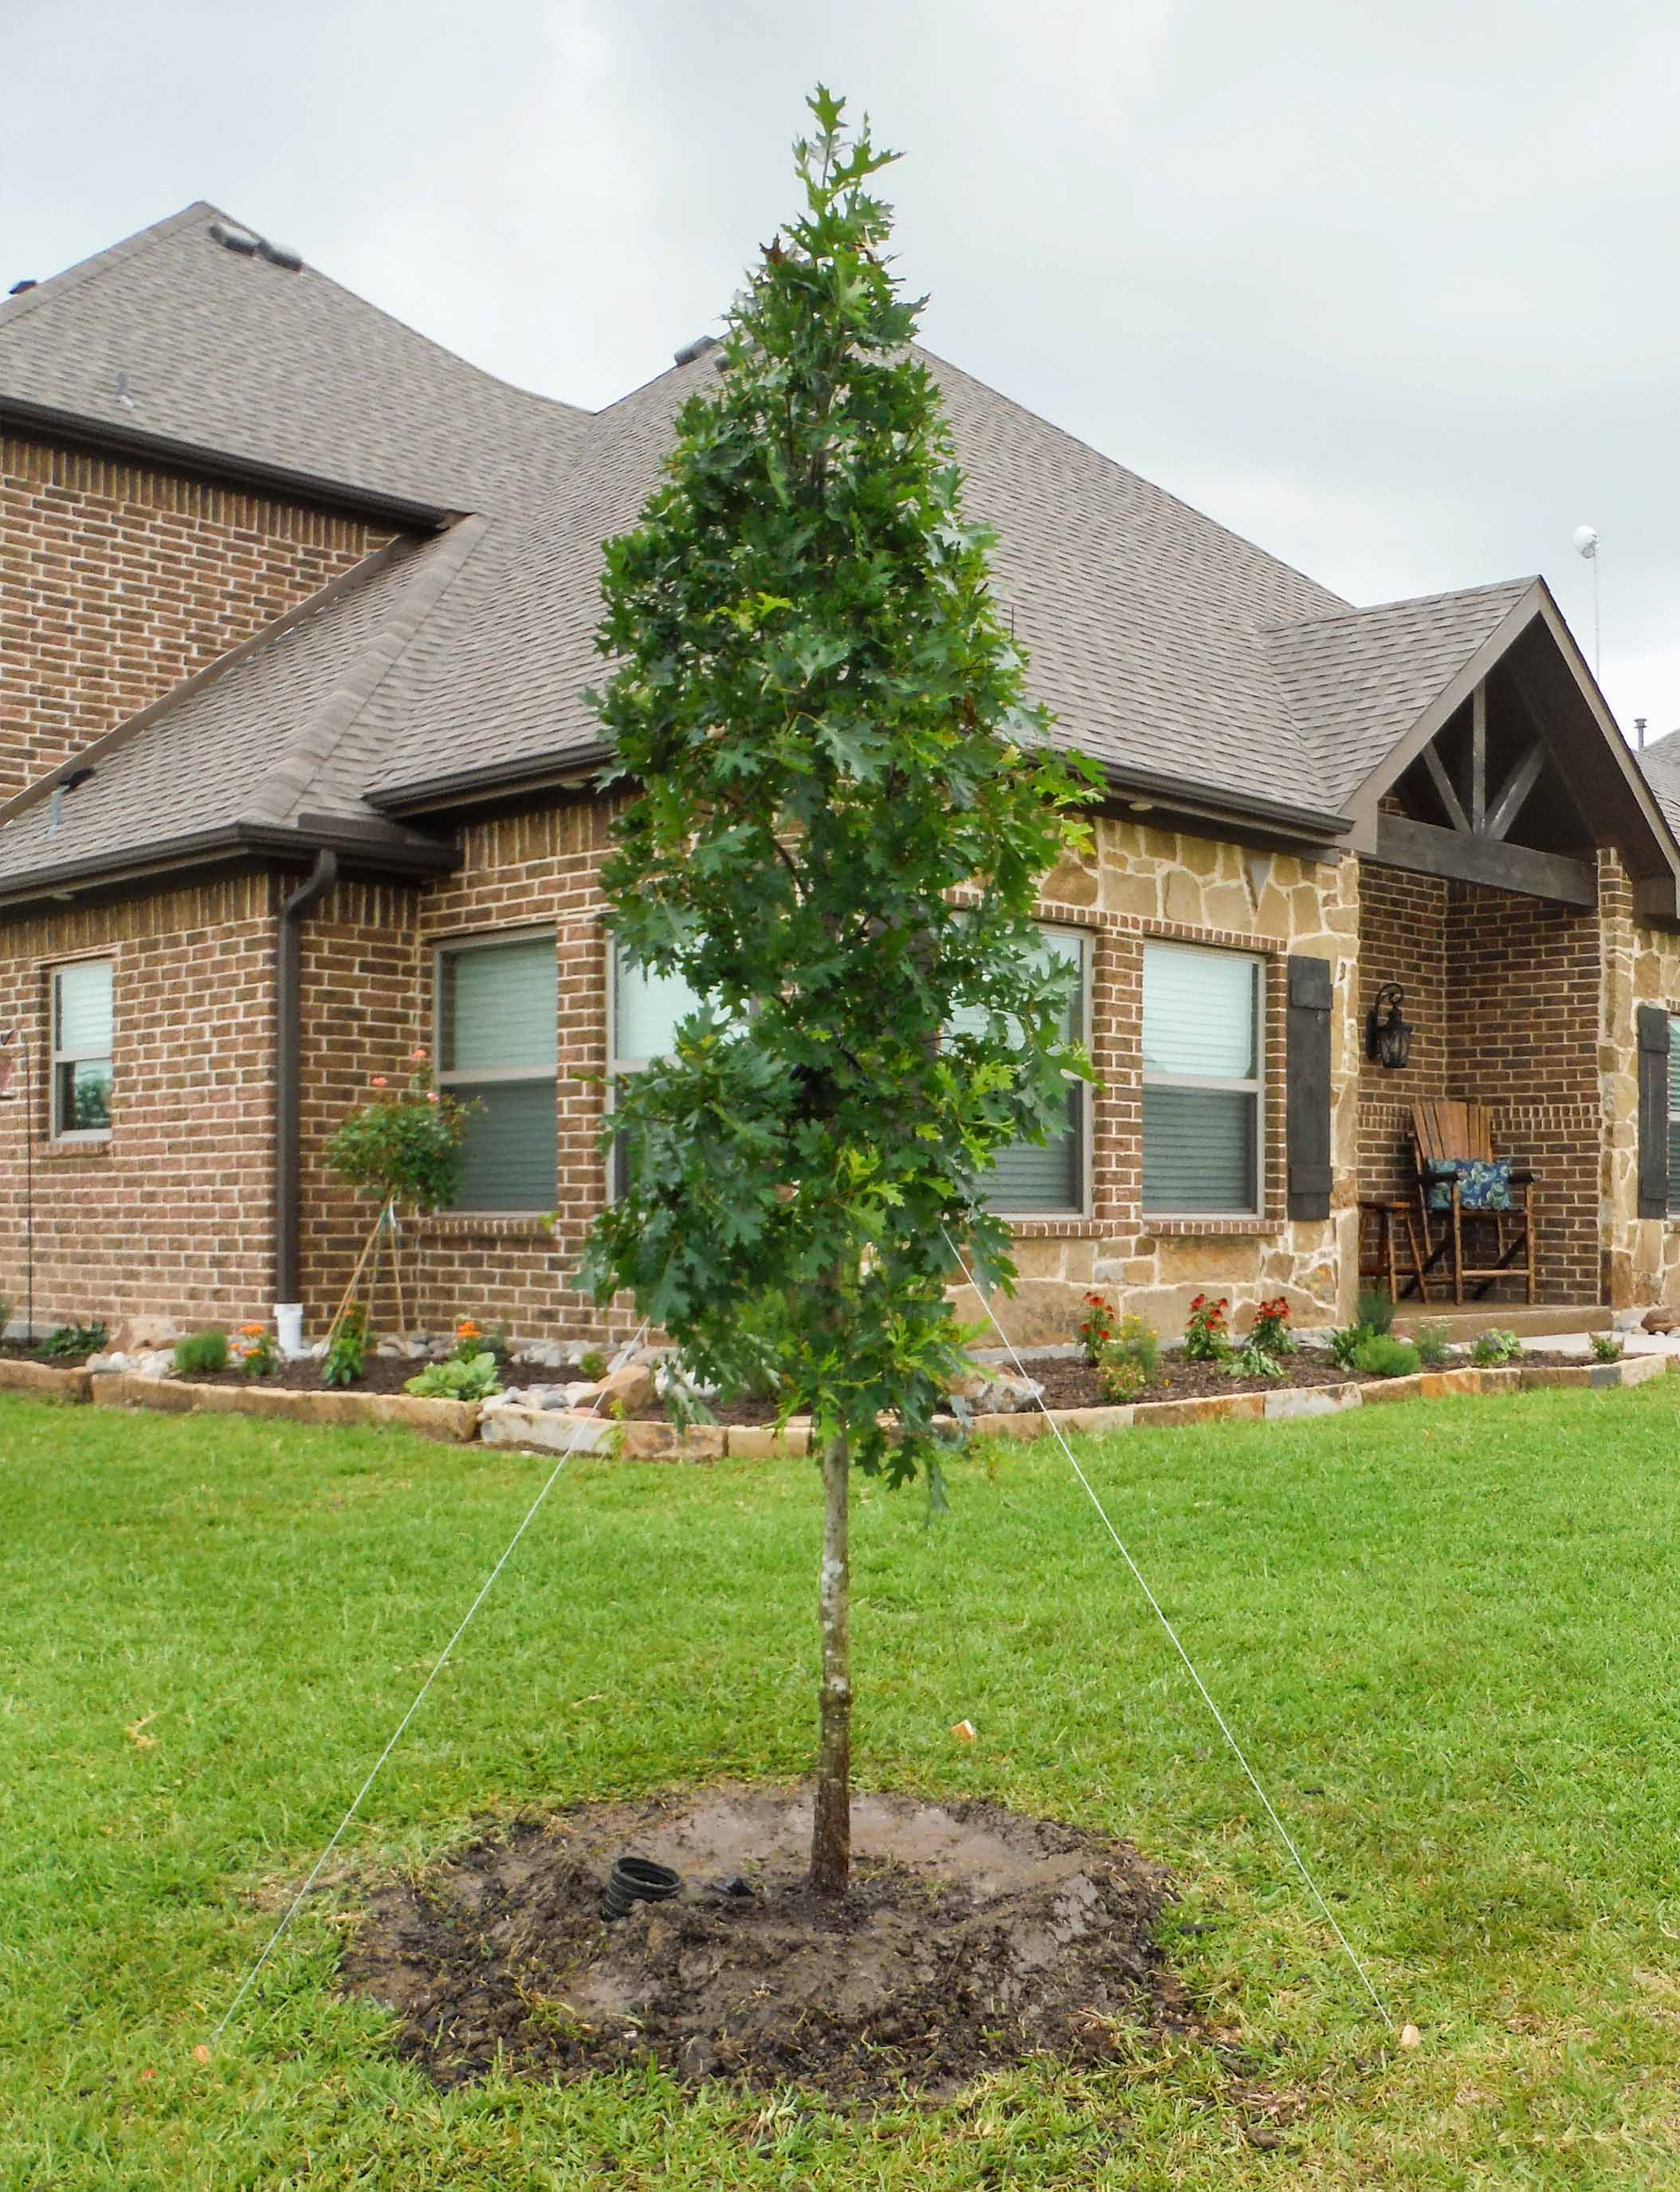 Small Red Oak tree planted by Treeland Nursery.